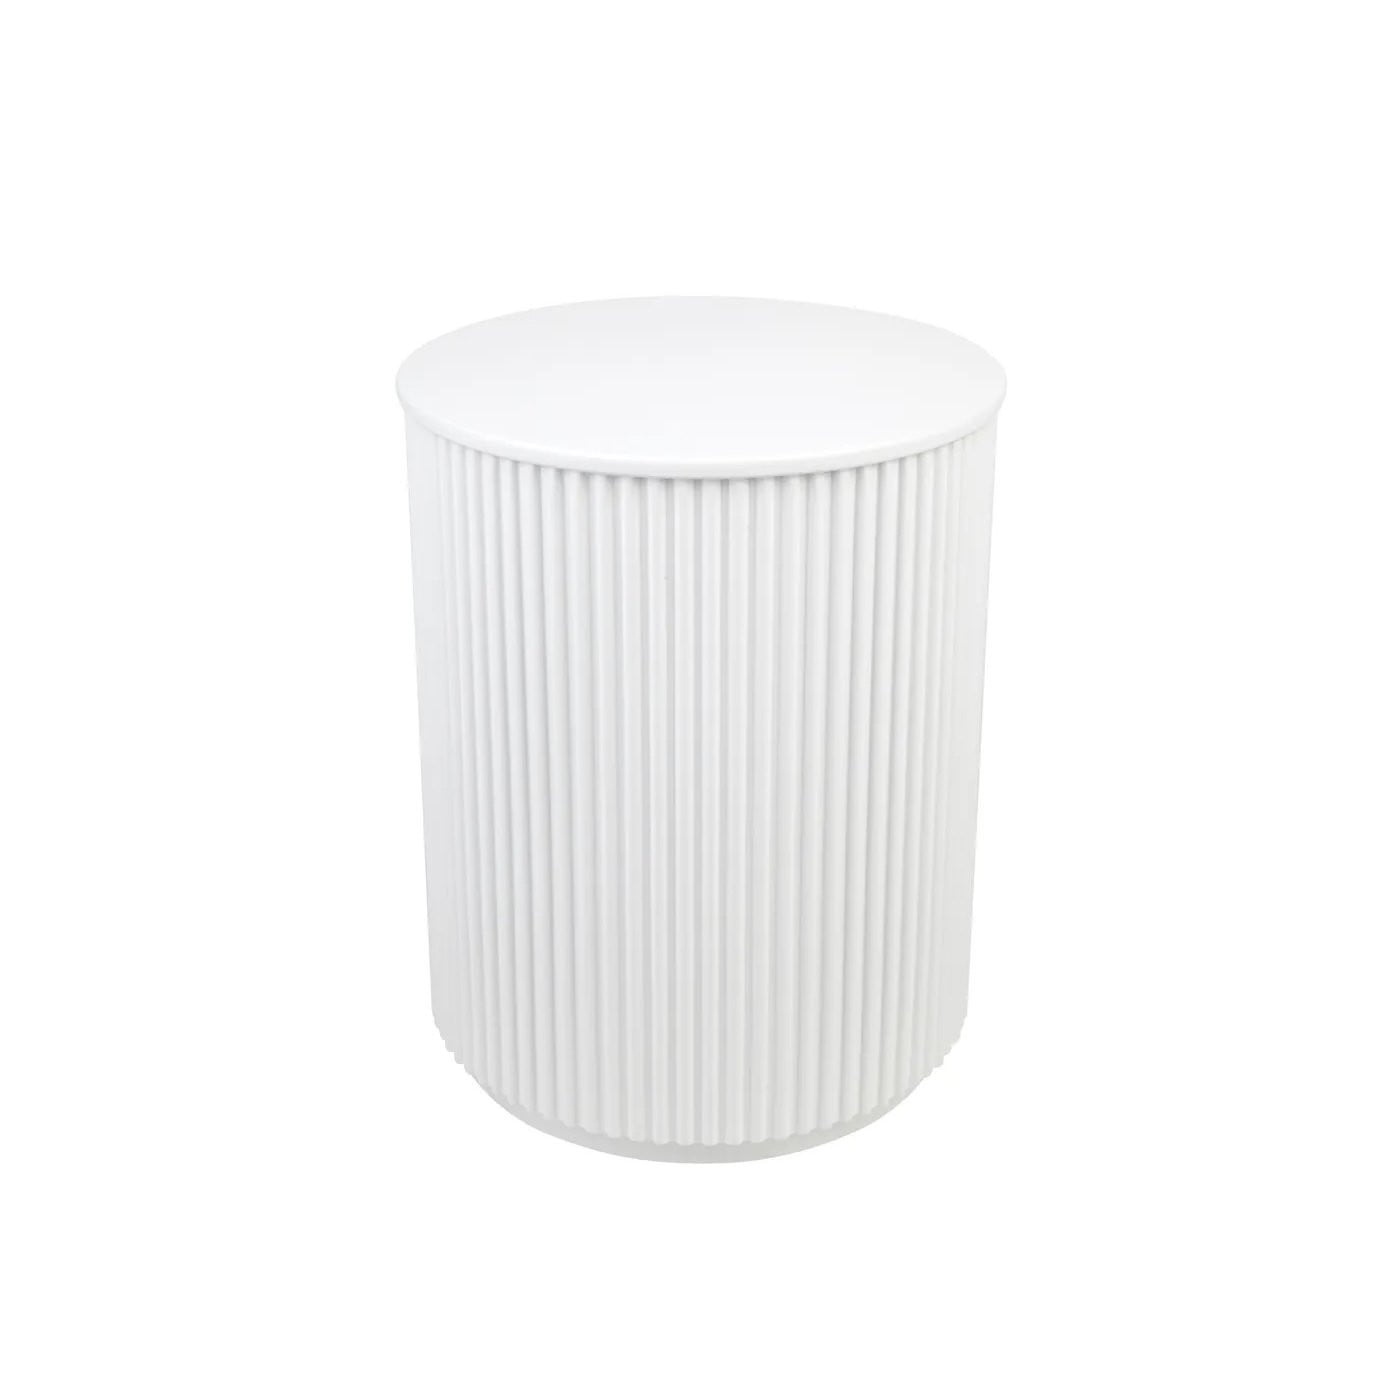 Nomad White Round Side Table